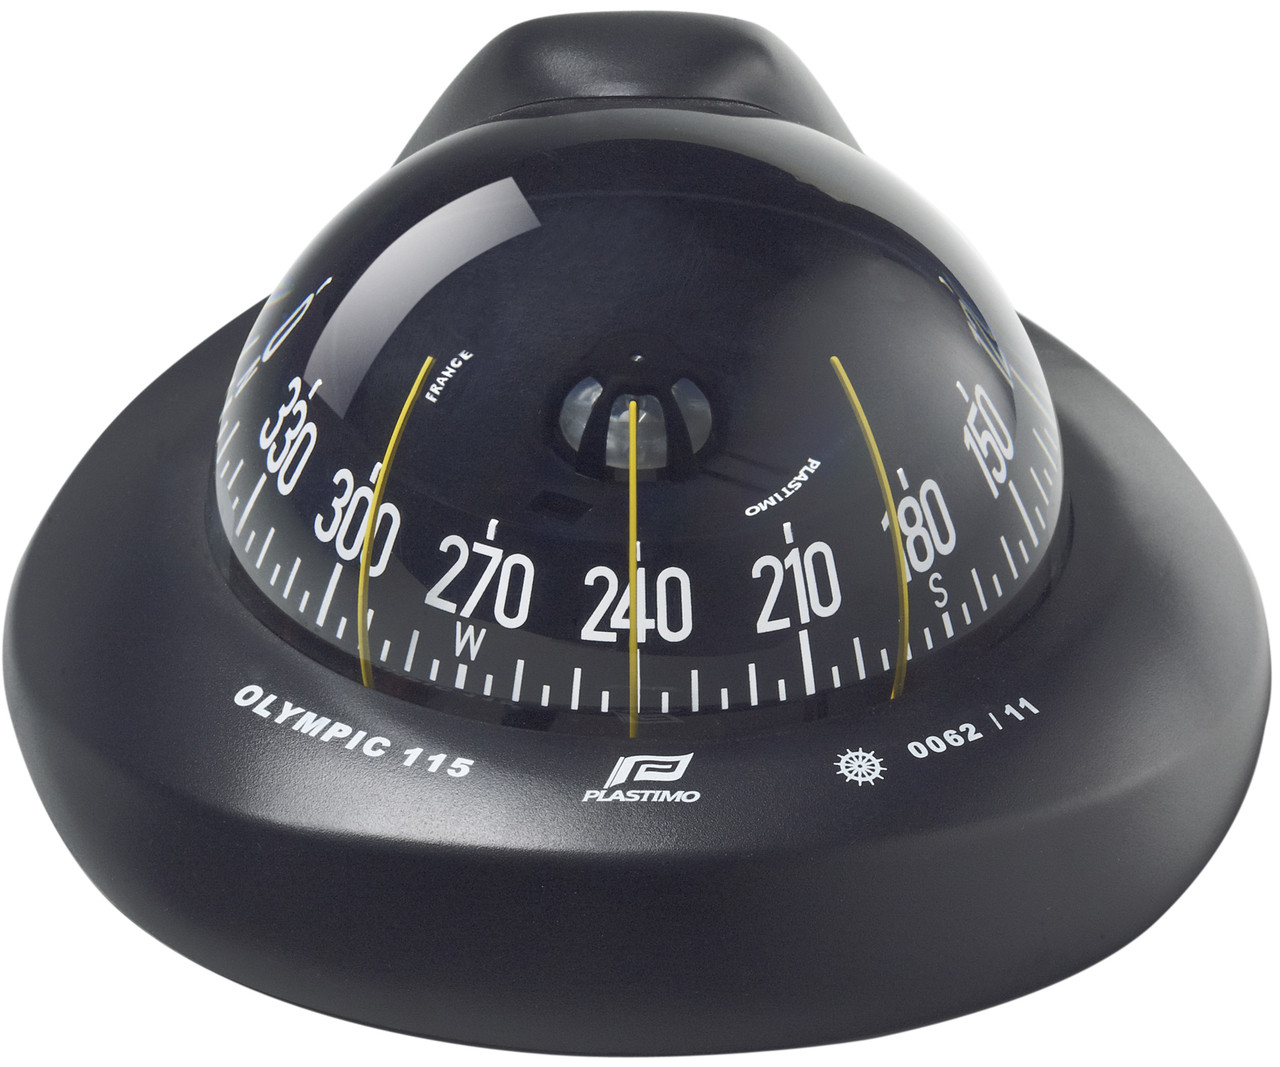 Olympic 115 Sailboat Compass Black, Inclined Flush Mount, Flat Card